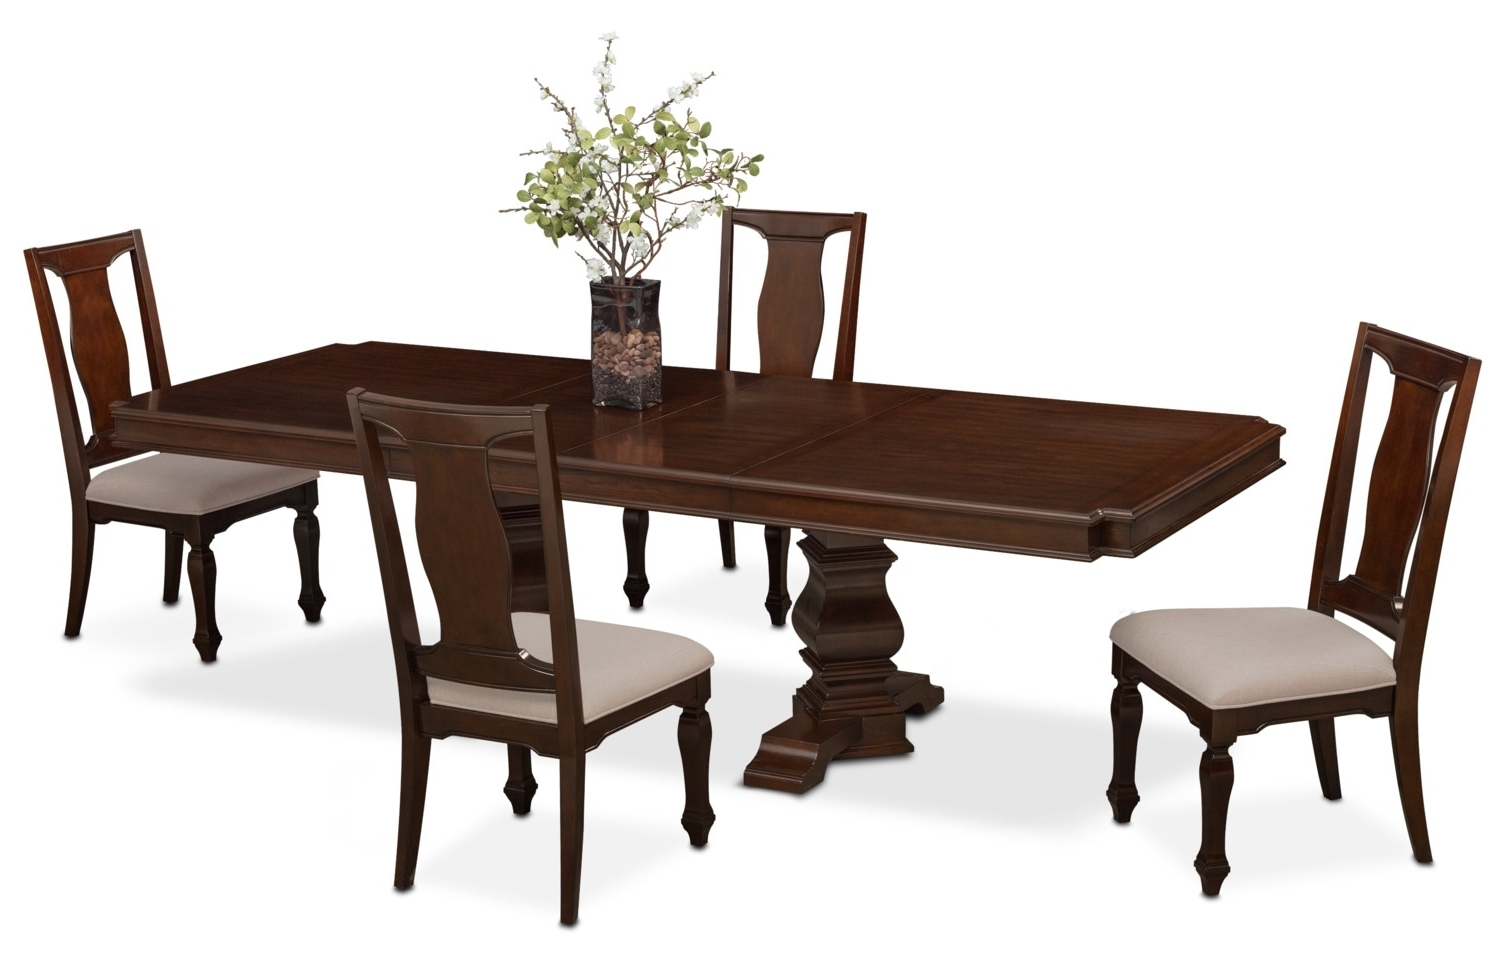 Vienna Dining Tables With Regard To Most Popular Vienna Rectangular Dining Table And 4 Side Chairs – Merlot (View 11 of 25)